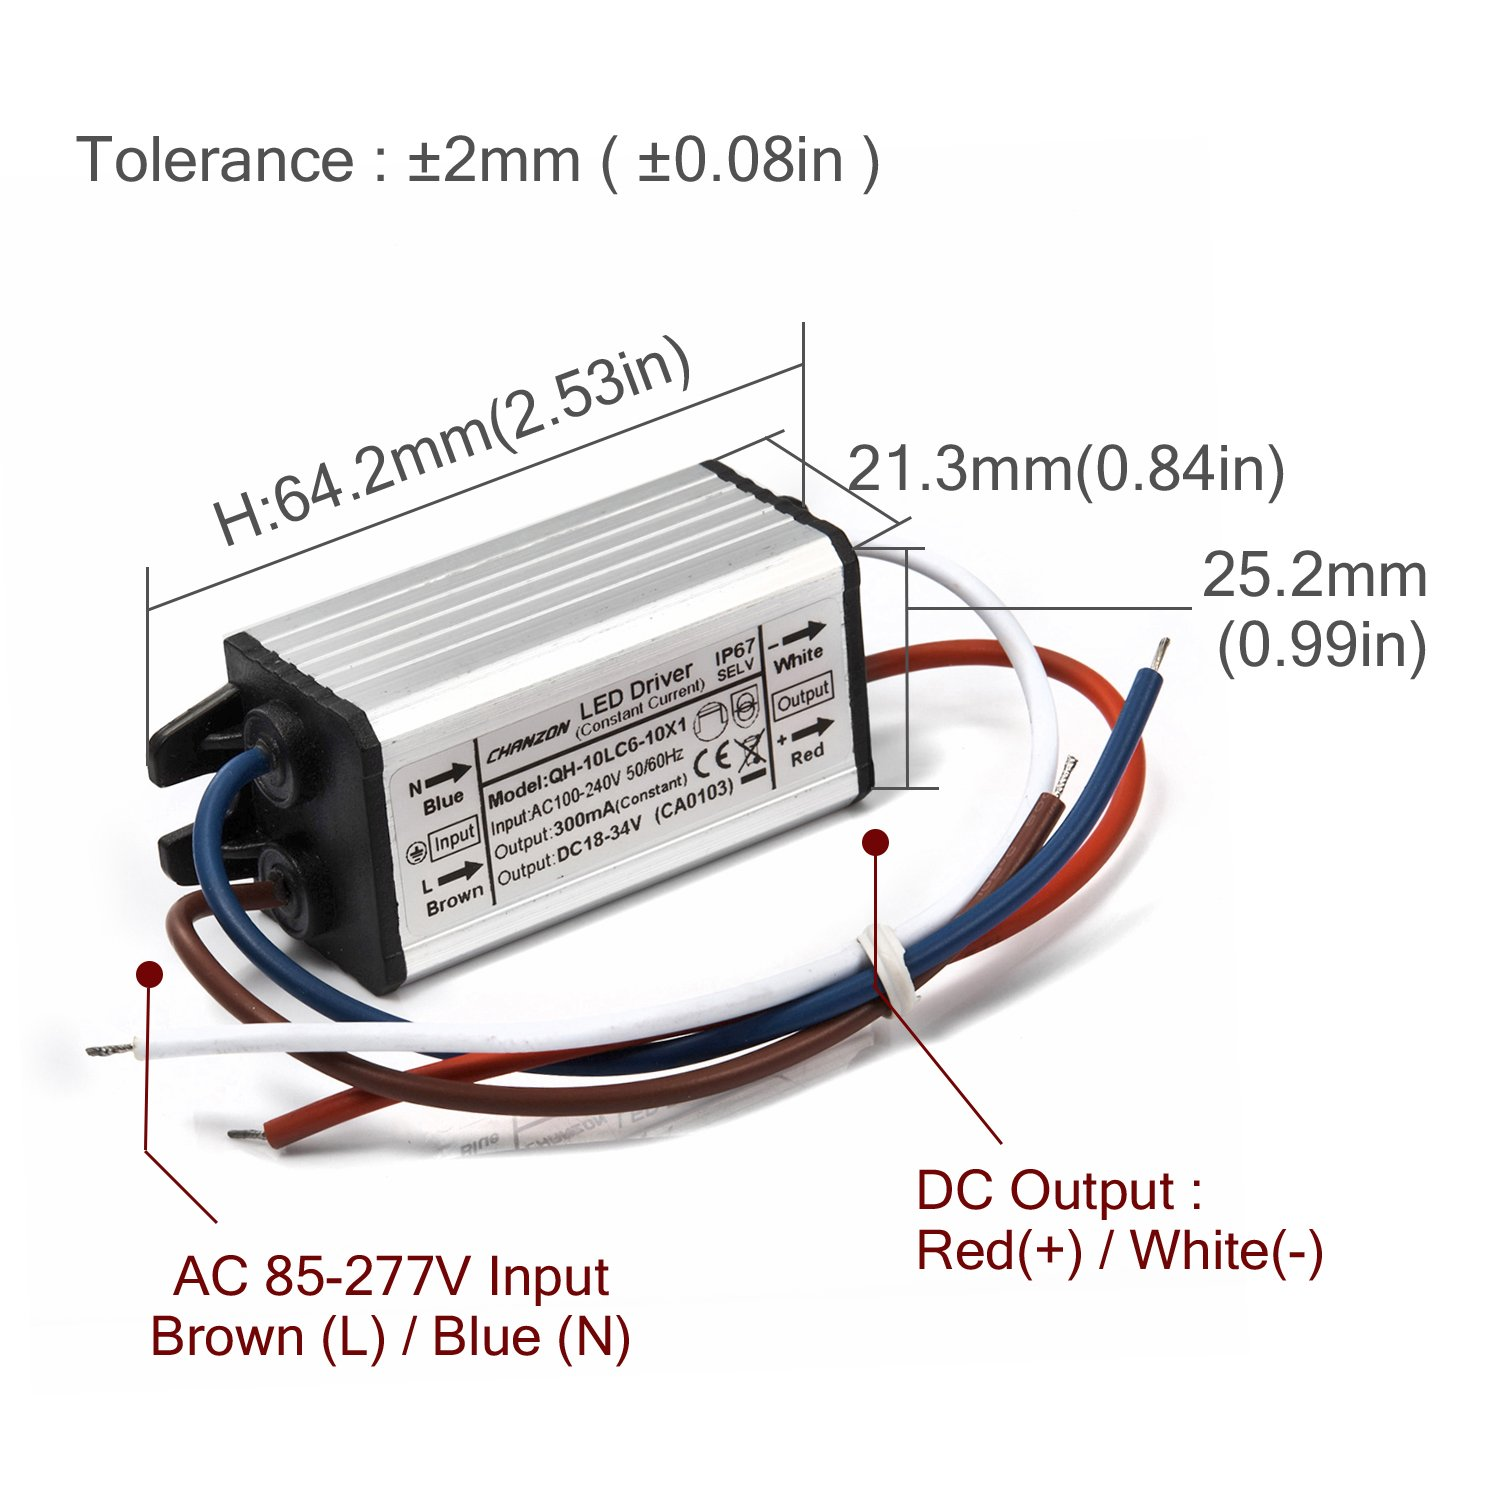 Chanzon Led Driver 300ma Constant Current Output 18v 34v In110 Simple Dc To Ac Converter Circuit Diagram 240v 6 10x1w 6w 7w 8w 9w 10w Ip67 Waterproof High Power Supply 300 Ma Lighting